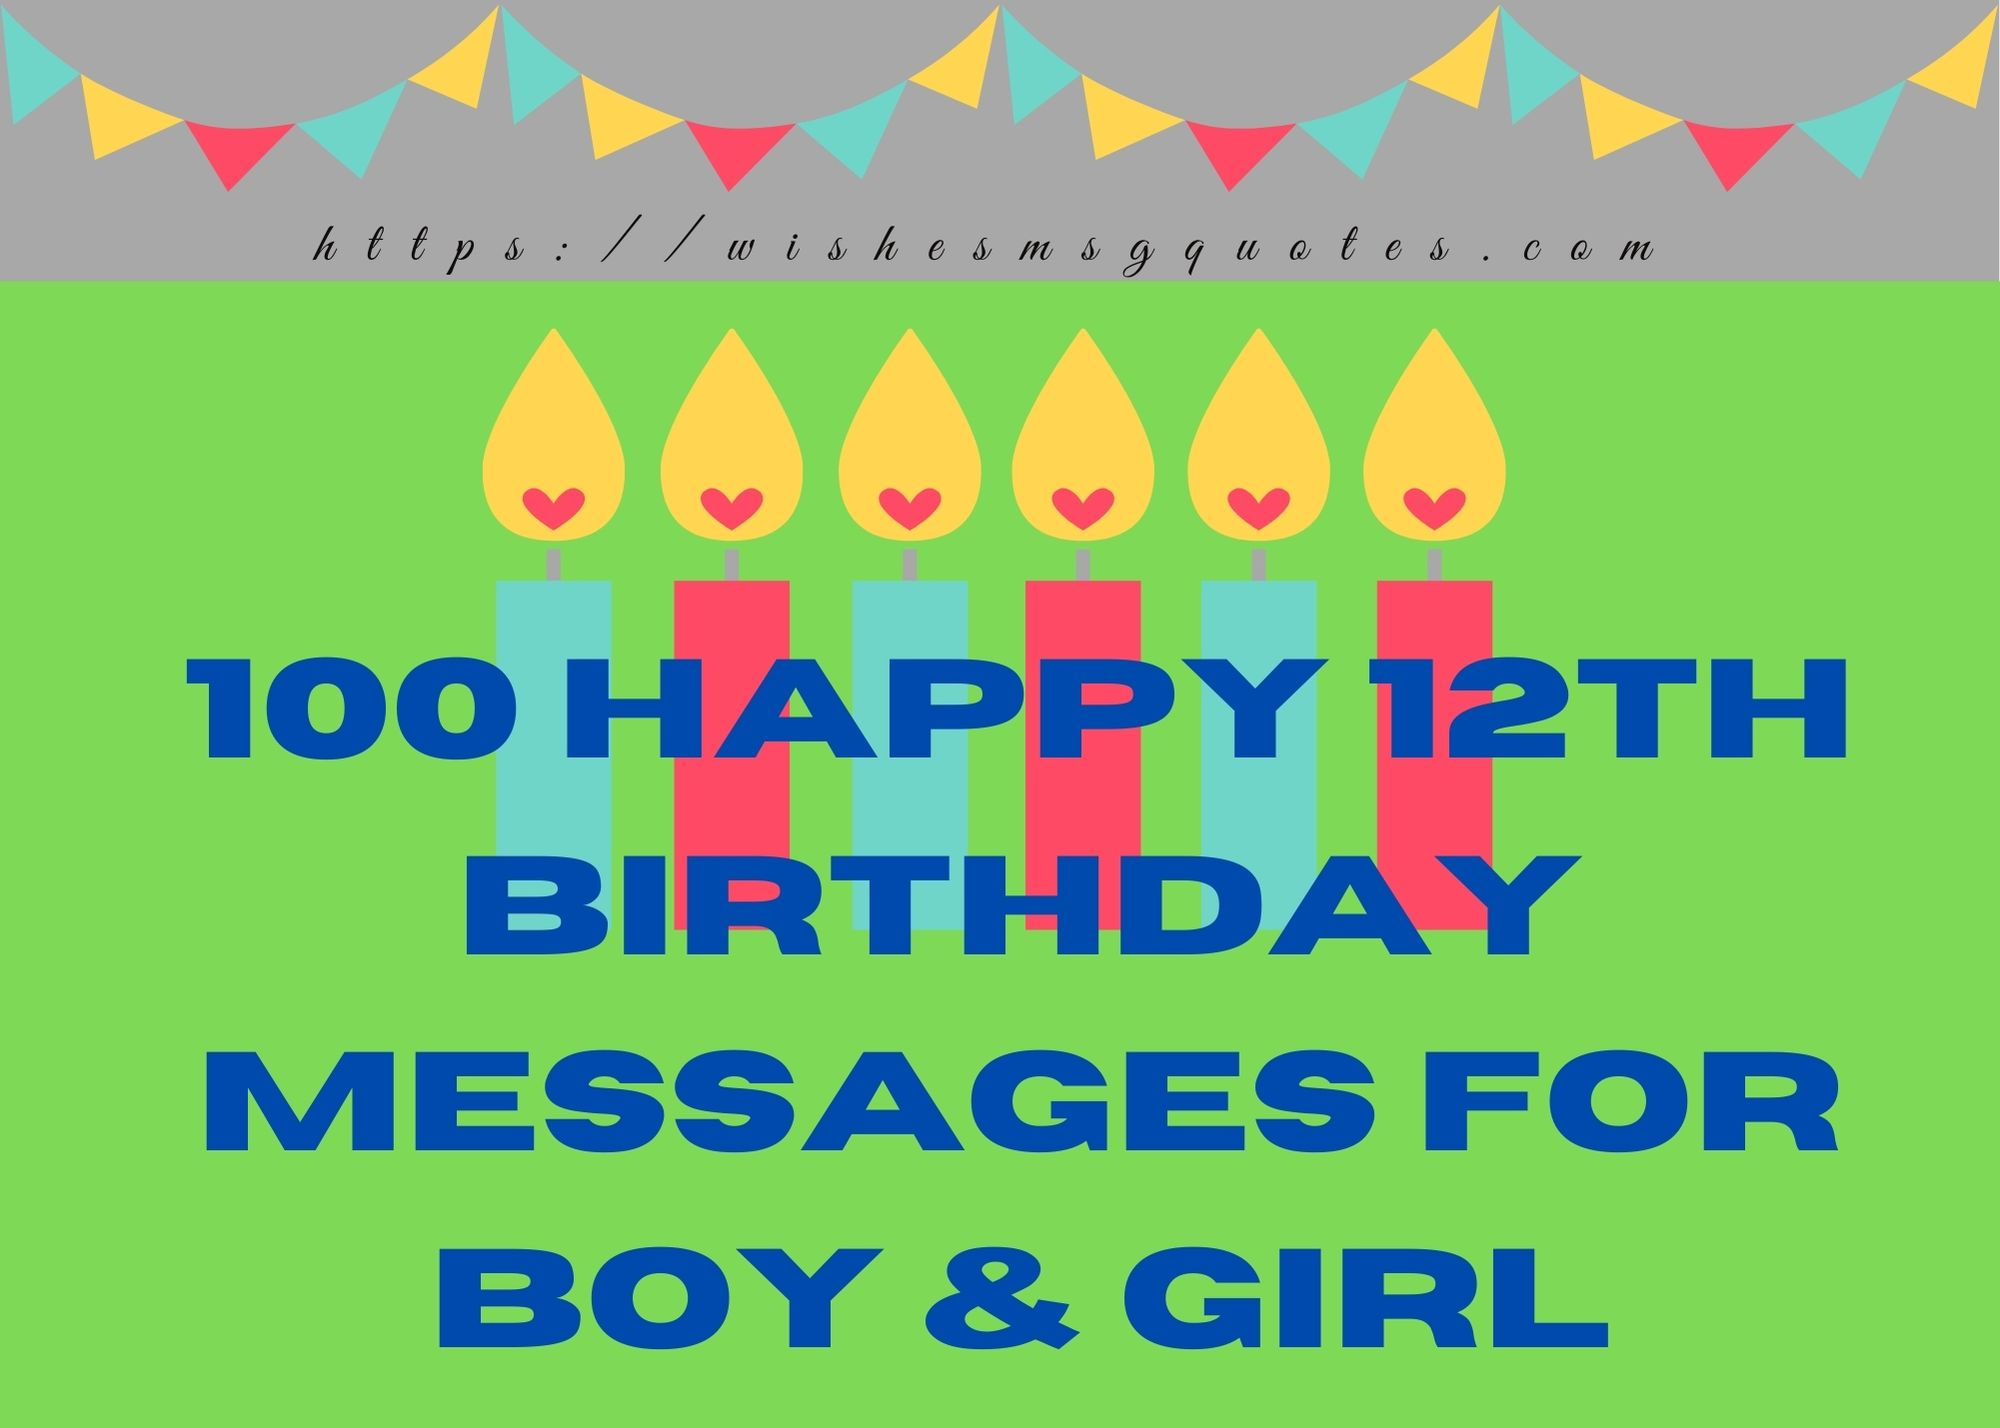 100+ Happy 12th Birthday Messages For Boy And Girl